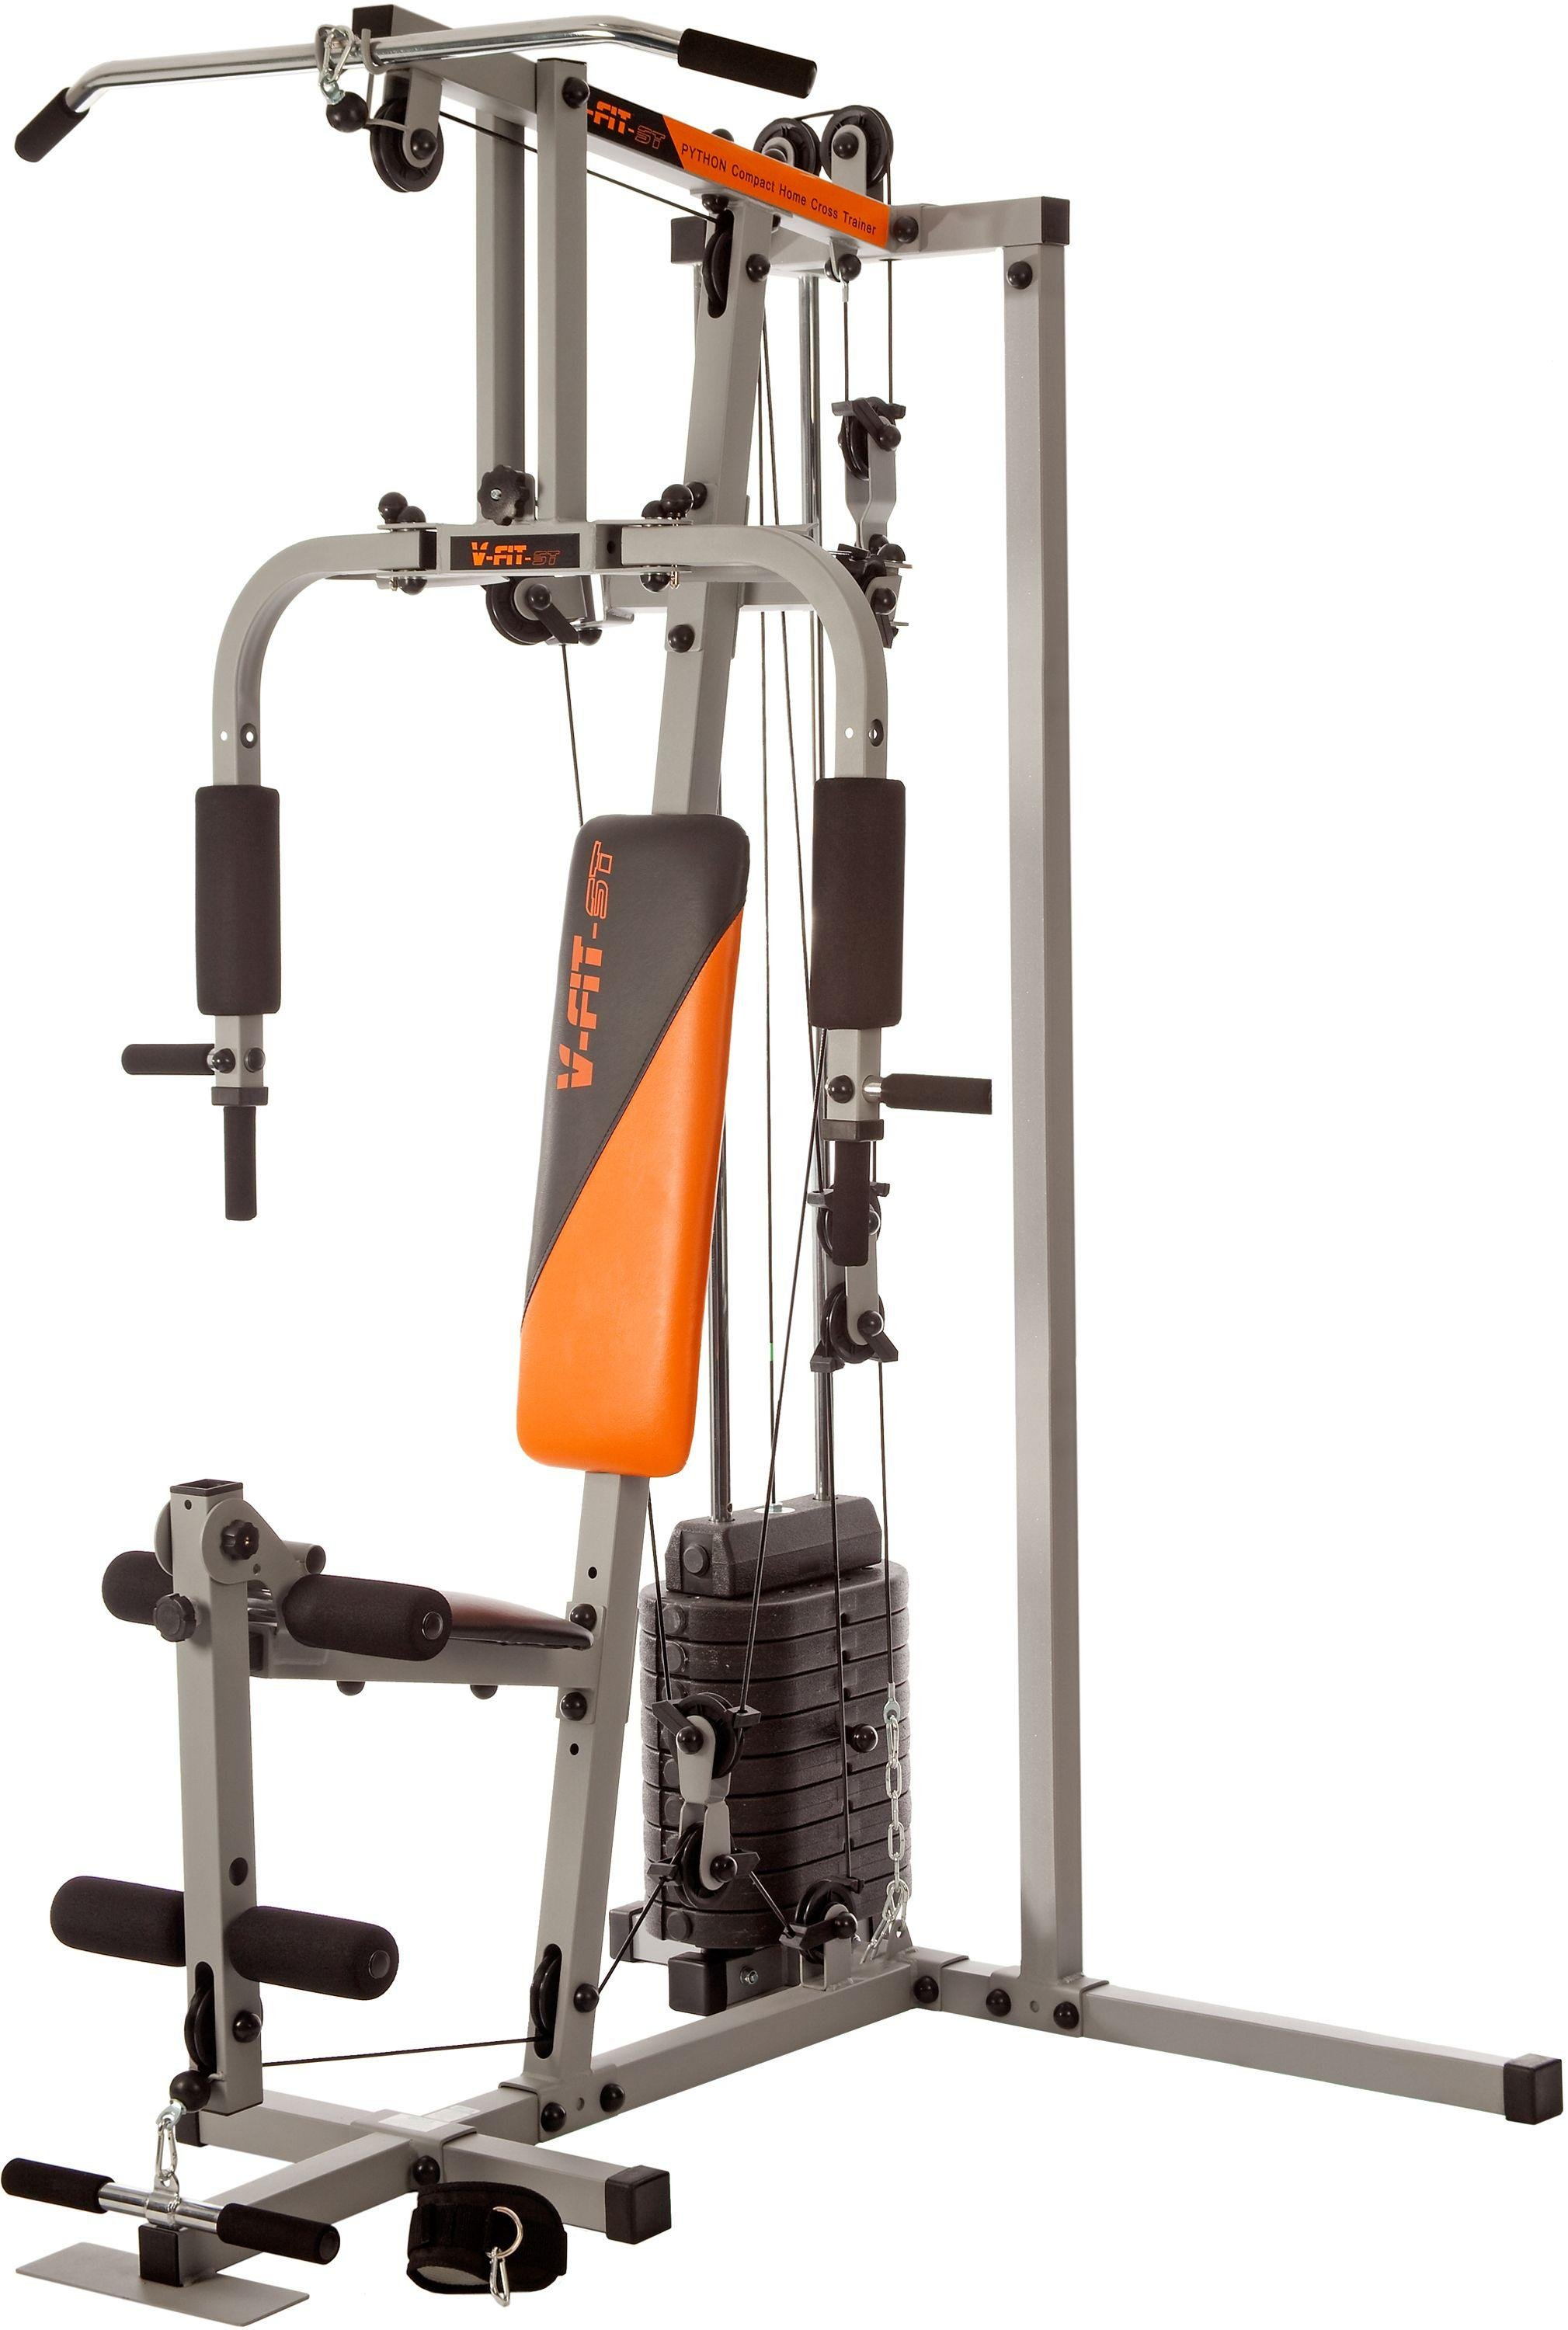 V-fit - STG 09-2 Adder Home Gym